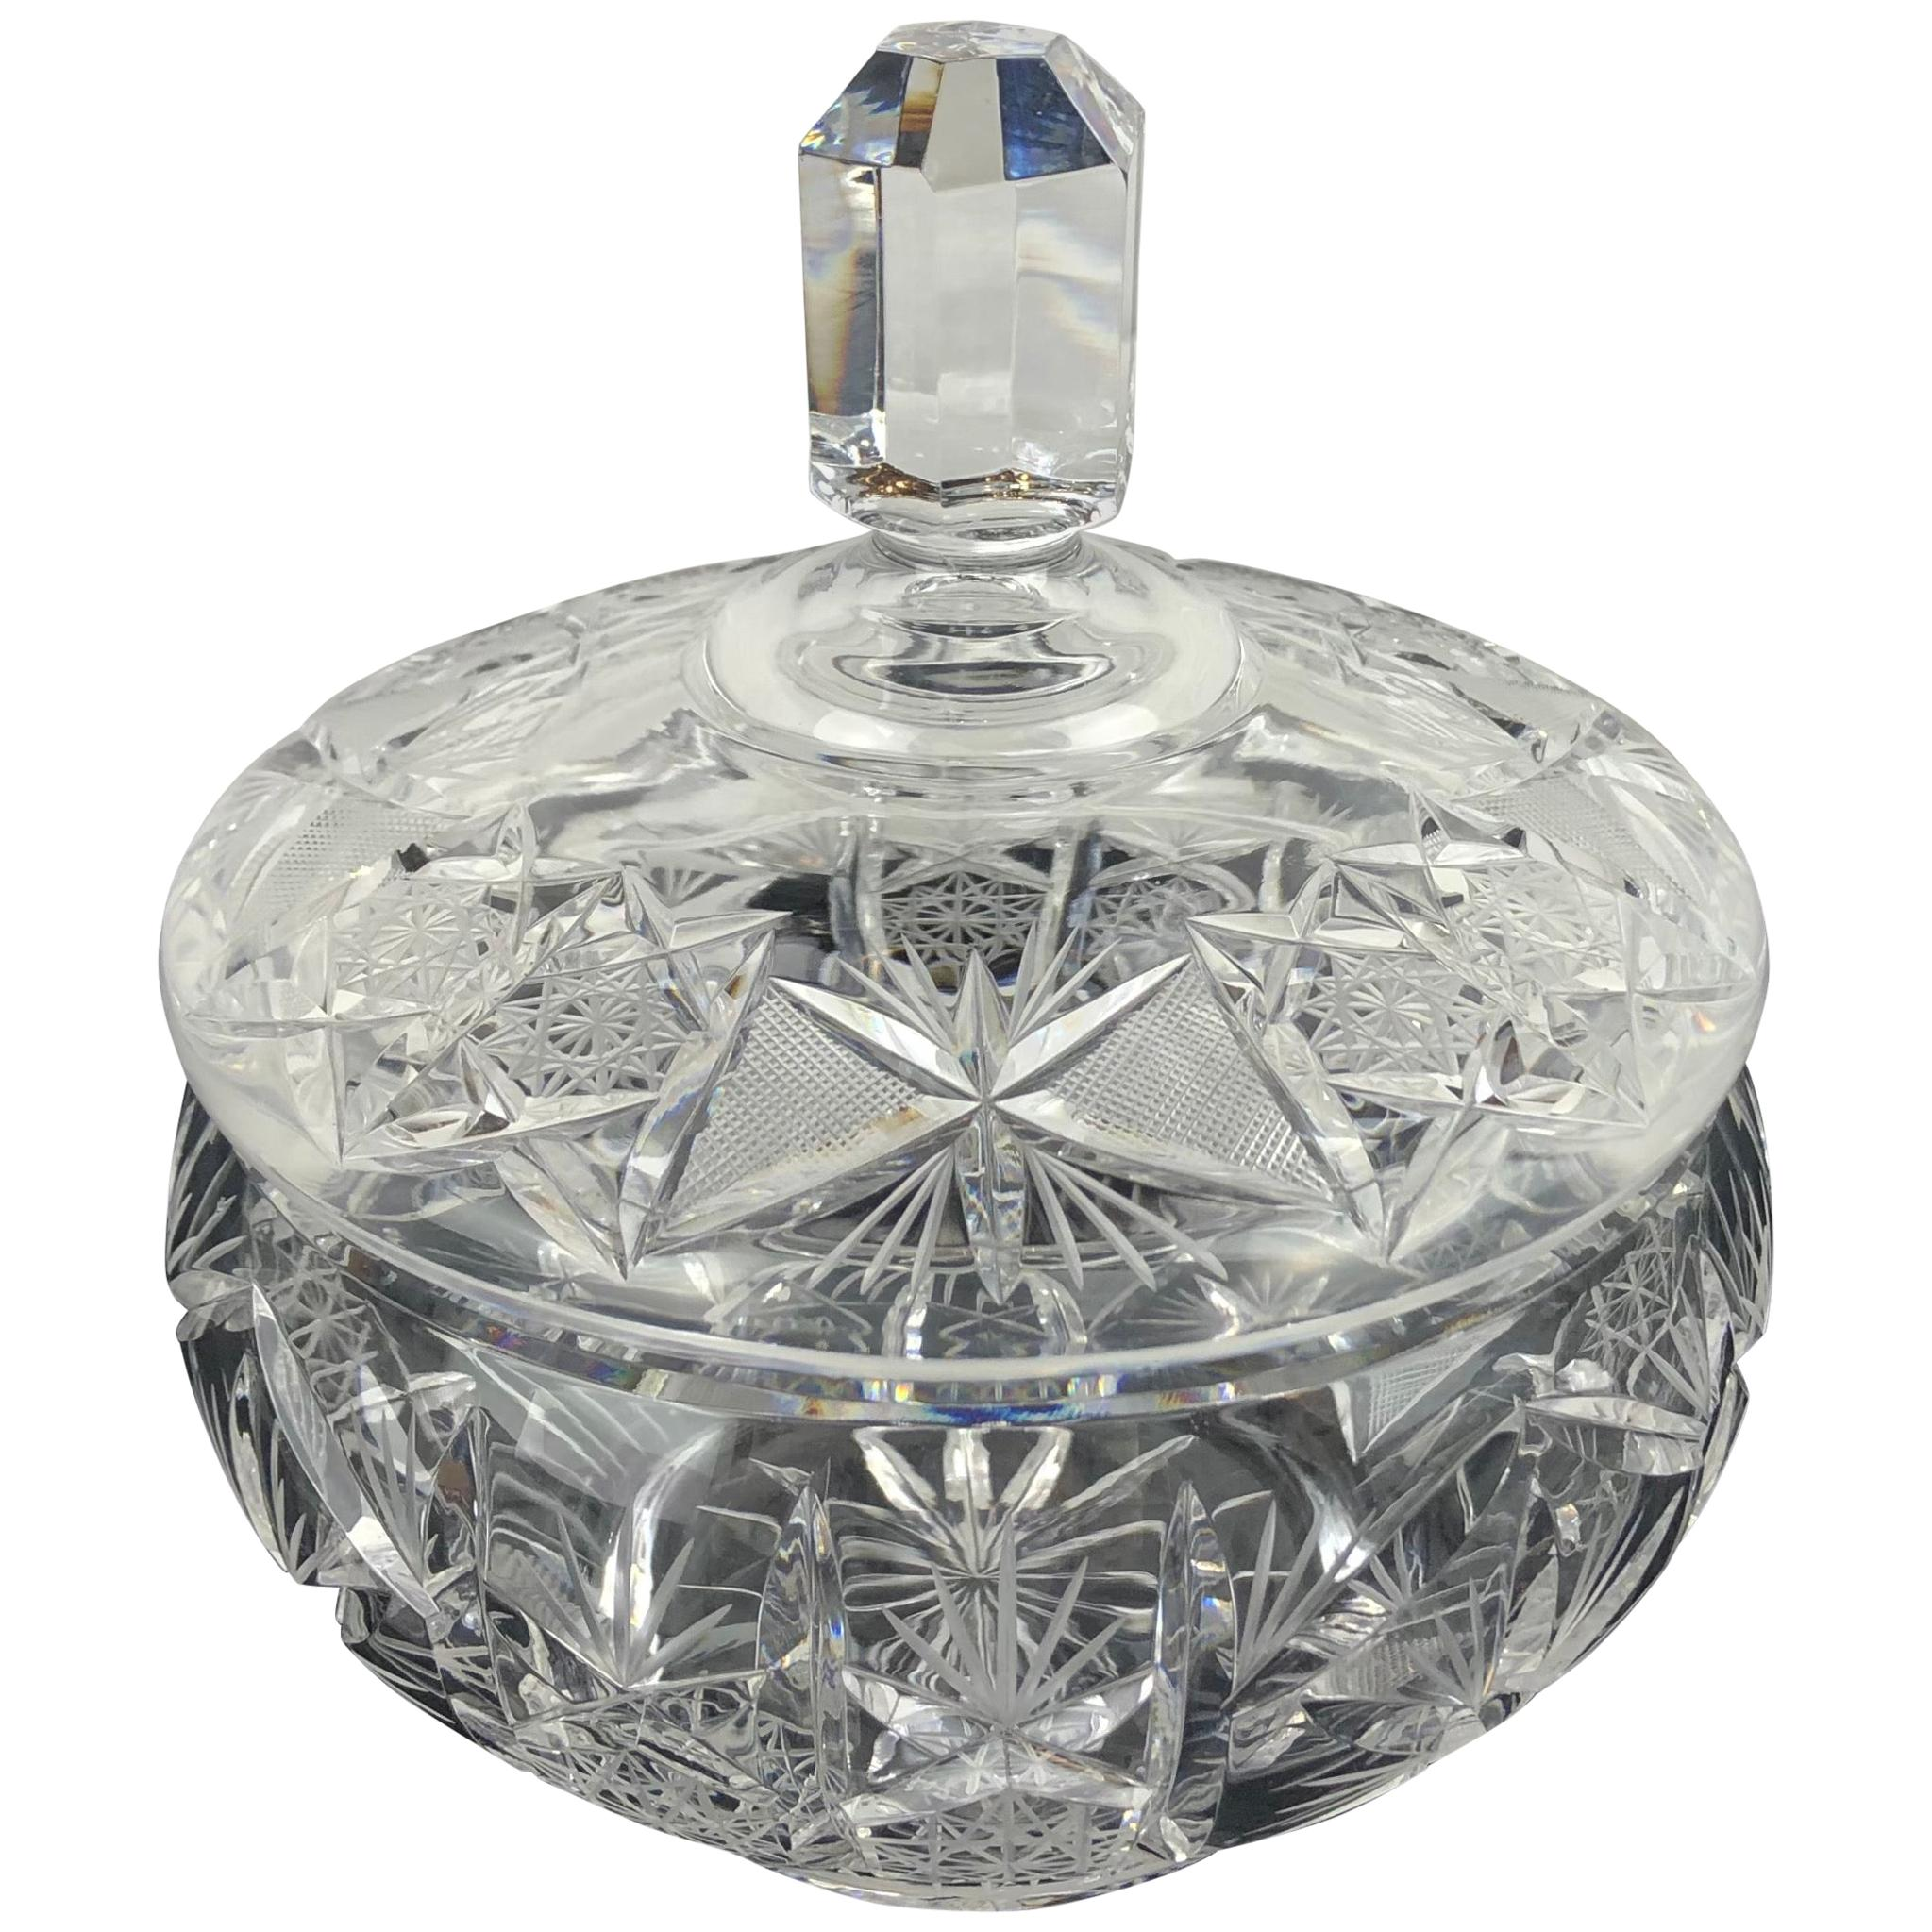 Crystal Candy Dish, Trinket or Jewelry Box Attributed to Baccarat